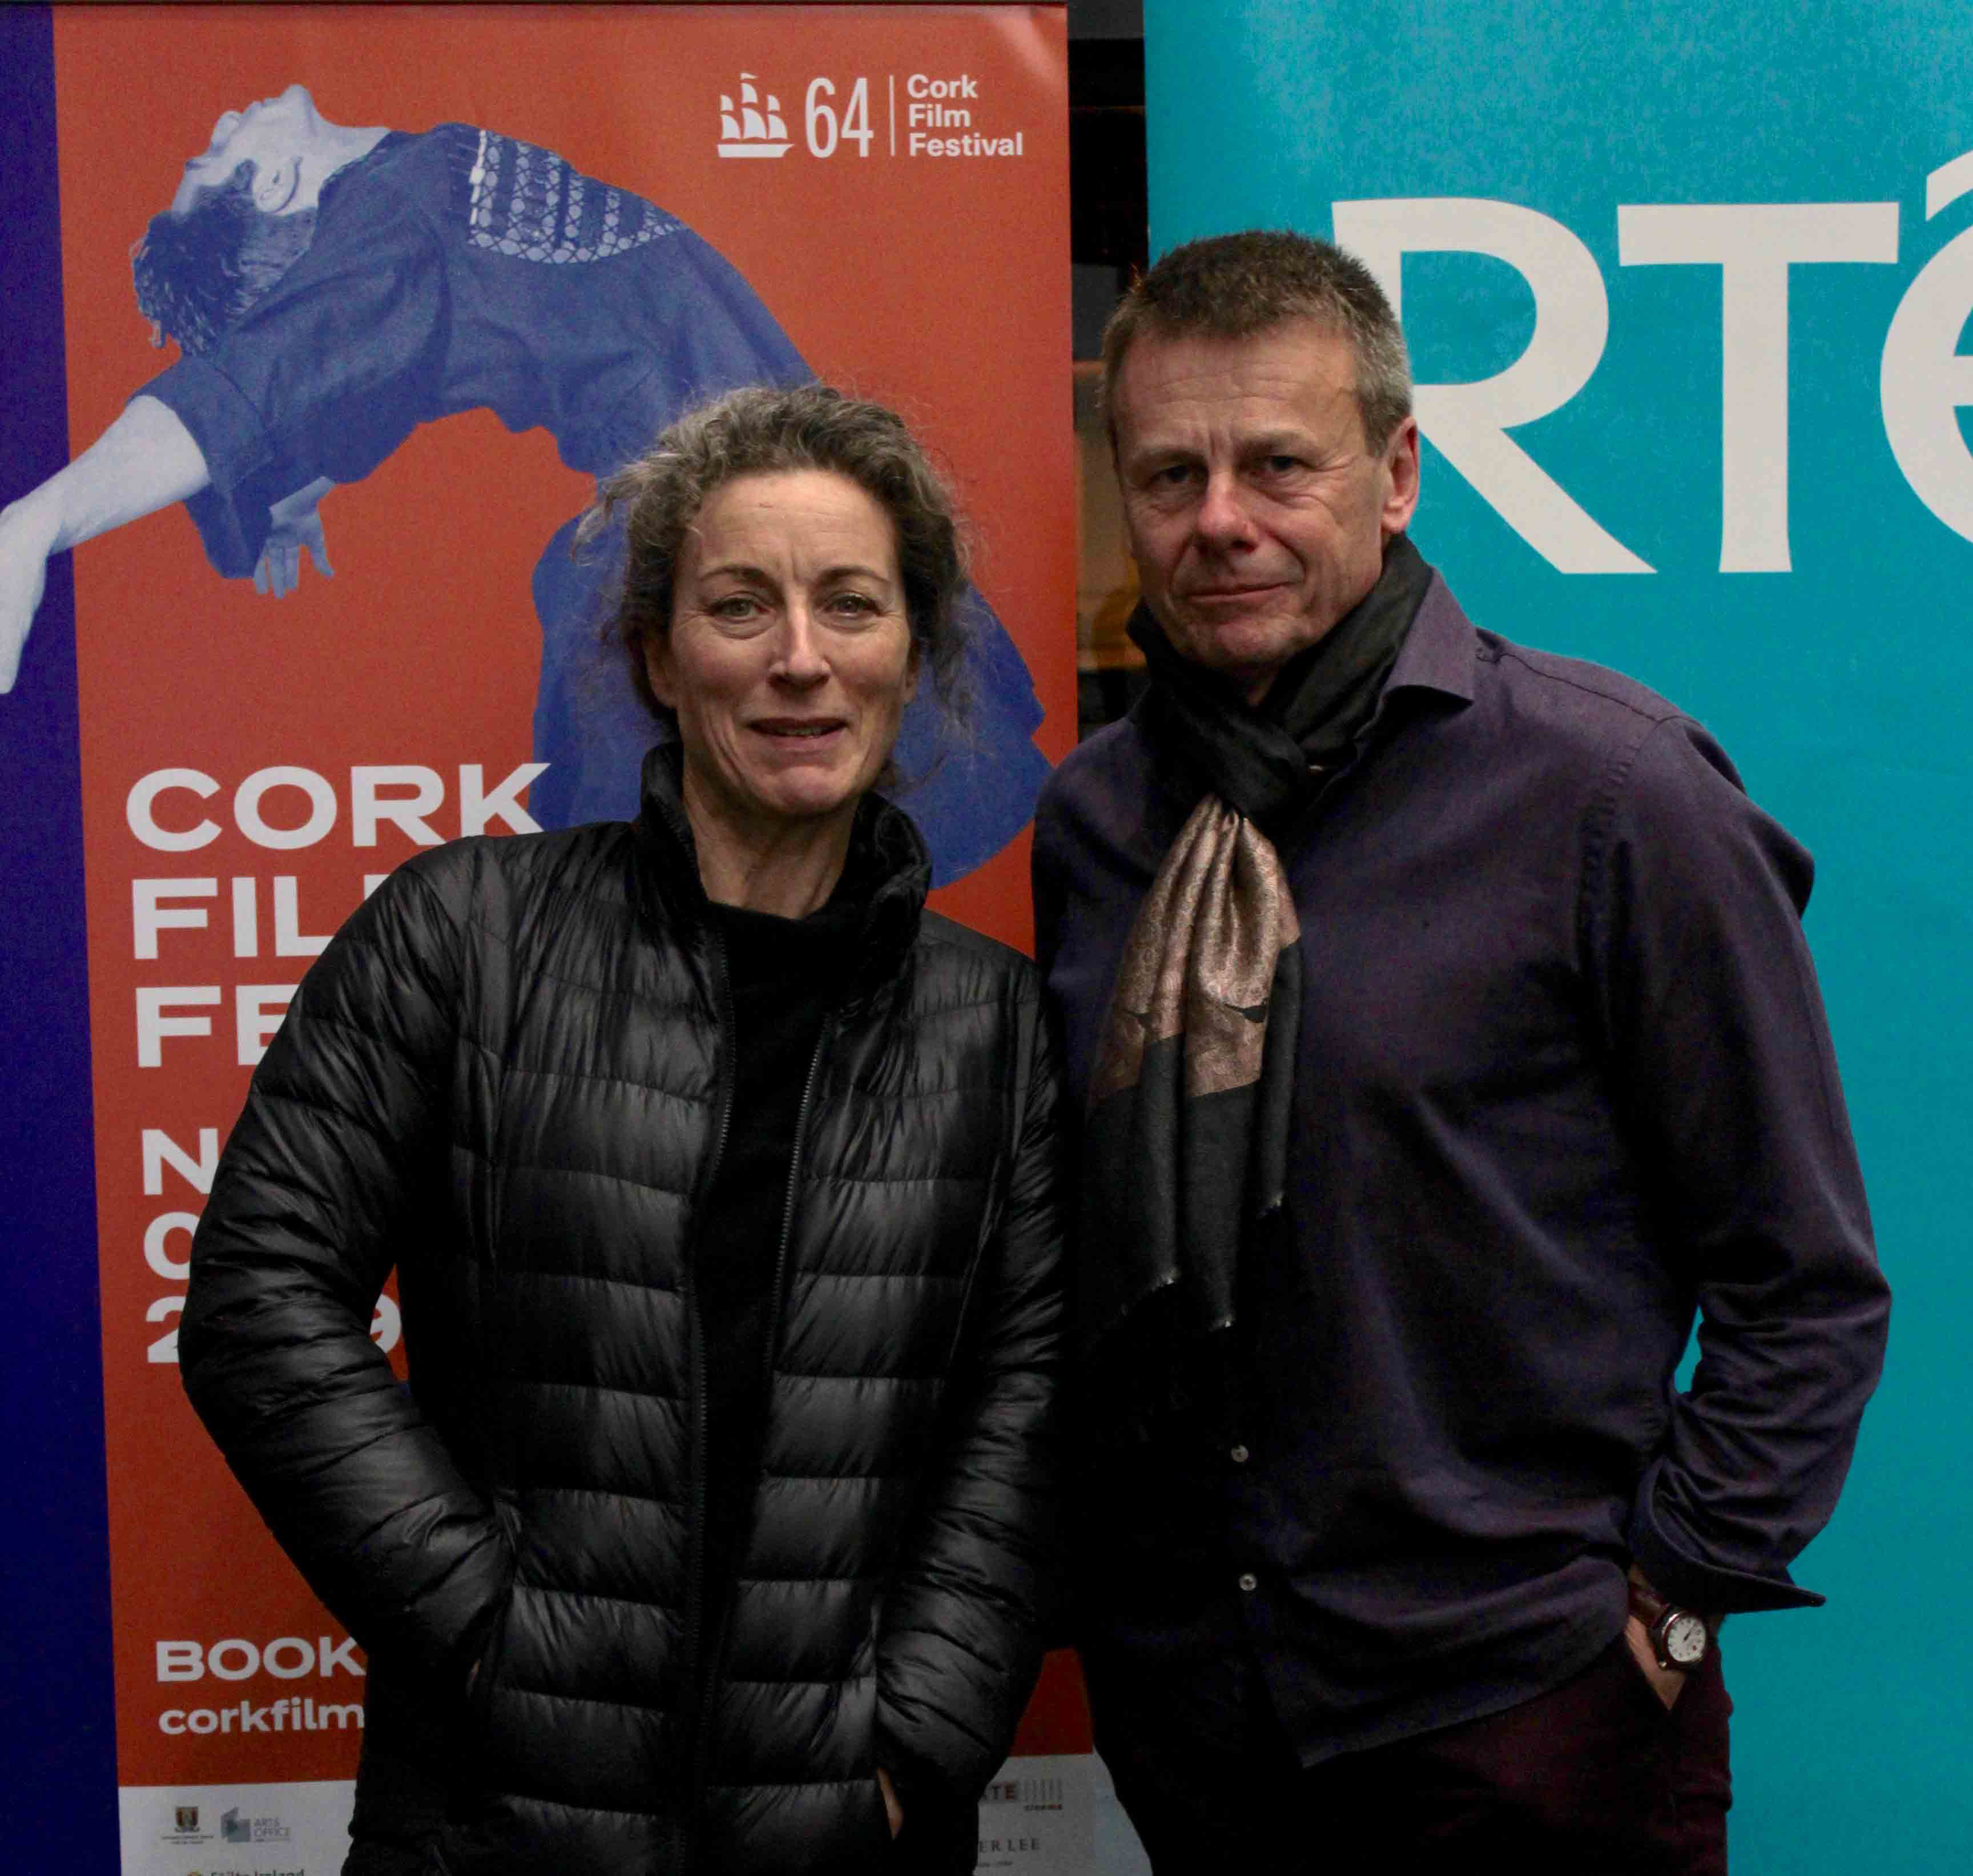 UCC/Arts Council Film Artist in Residence at the Cork Film Festival